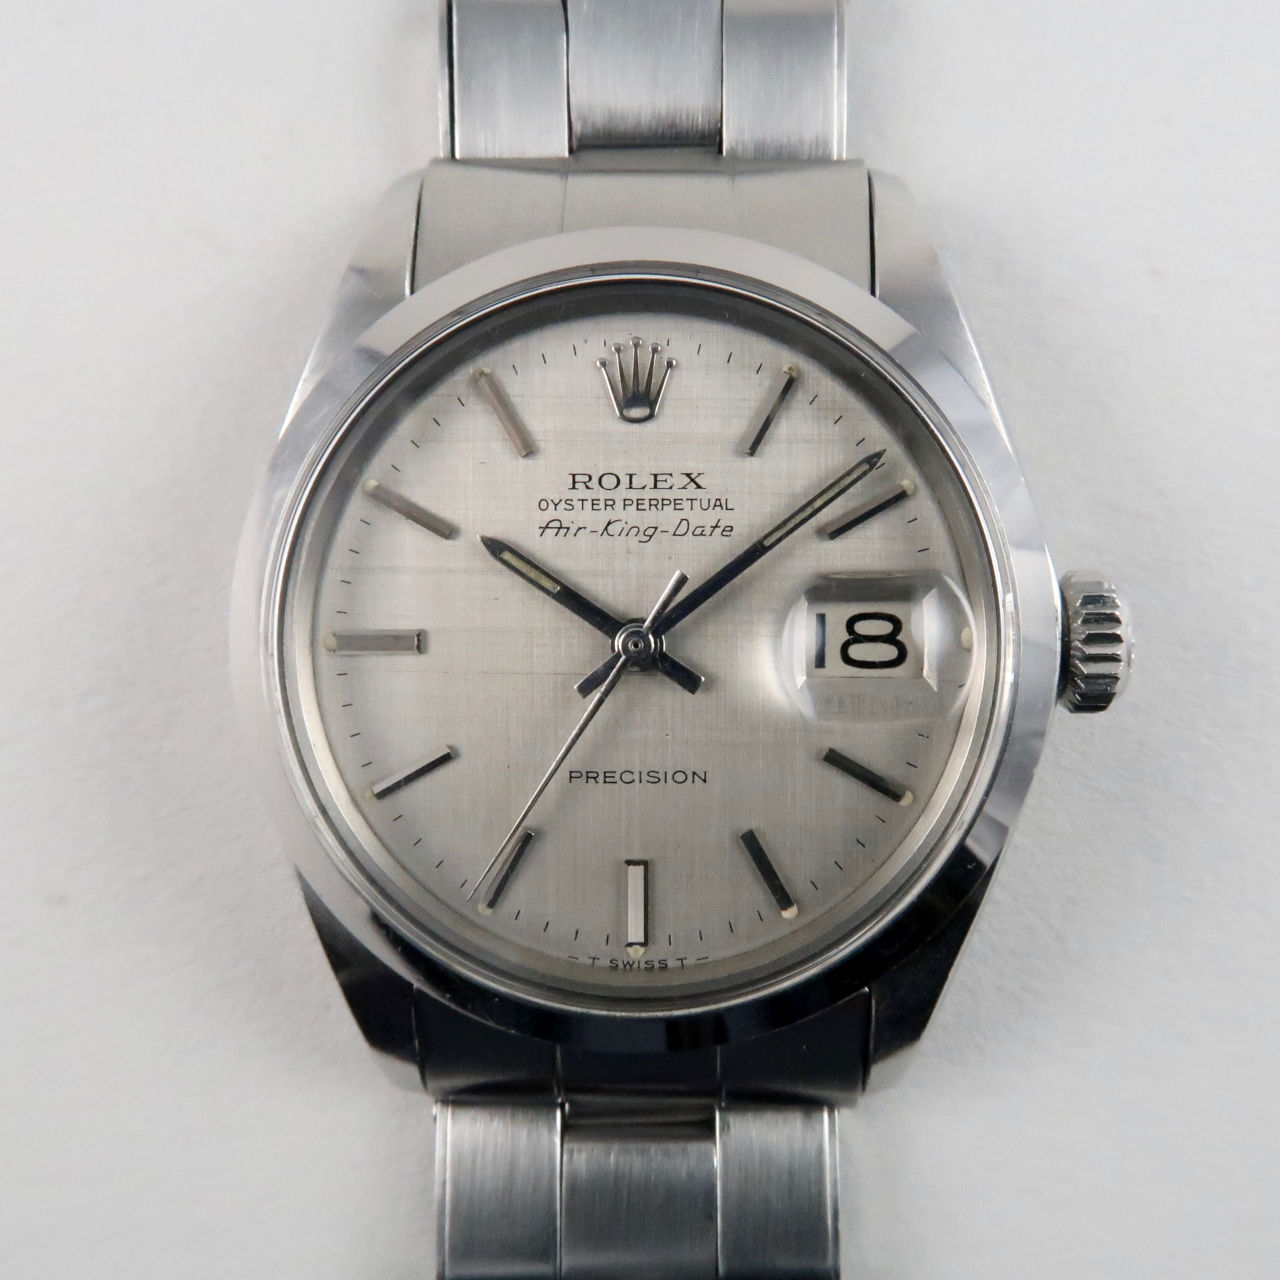 rolex-oyster-perpetual-air-king-date-ref-5700-steel-vintage-wristwatch-dated-1969-wxrakdd-v01